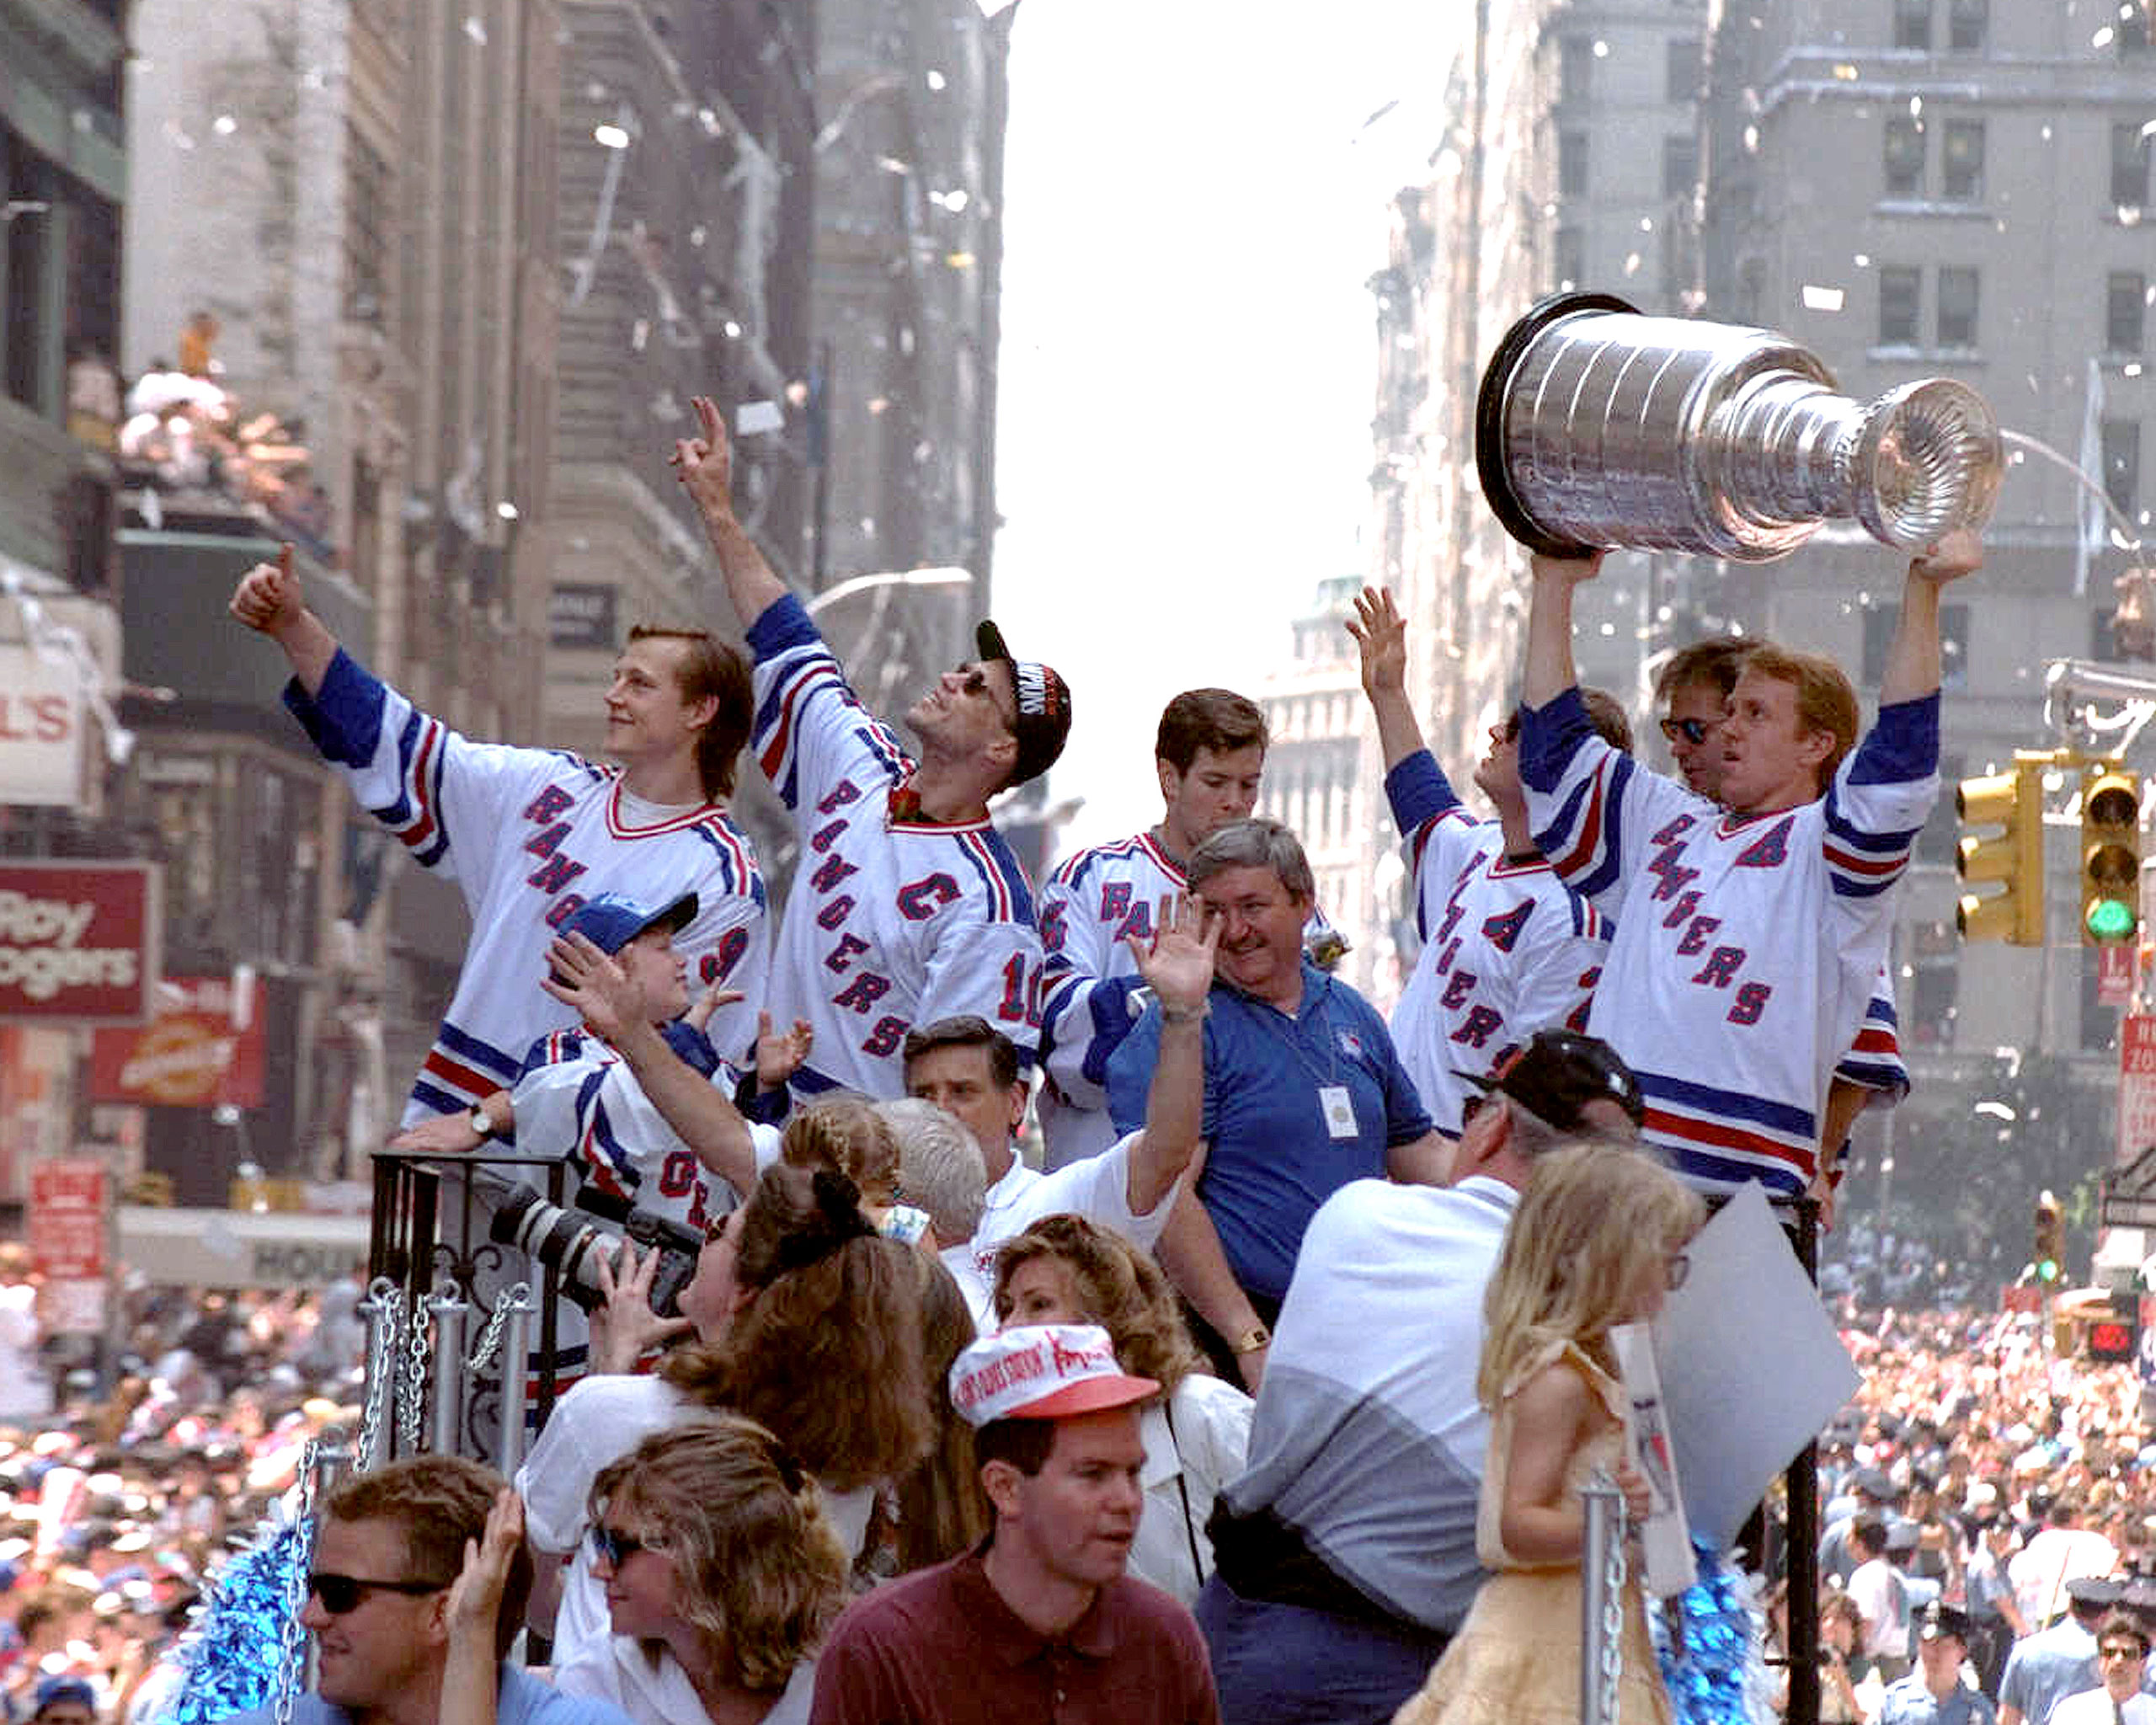 Adam Graves (far left) and Captain Mark Messier (sunglasses) with Ranger teammates during a ticker-tape  parade in honor of their Stanley Cup win, on June 17, 1994. Brian Leetch holds the cup,